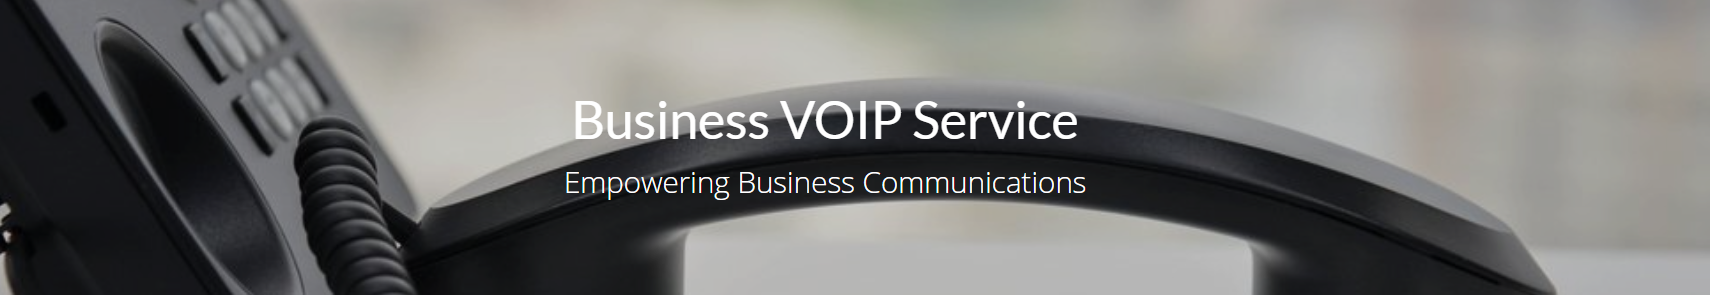 Business VoIP Phone Systems New York